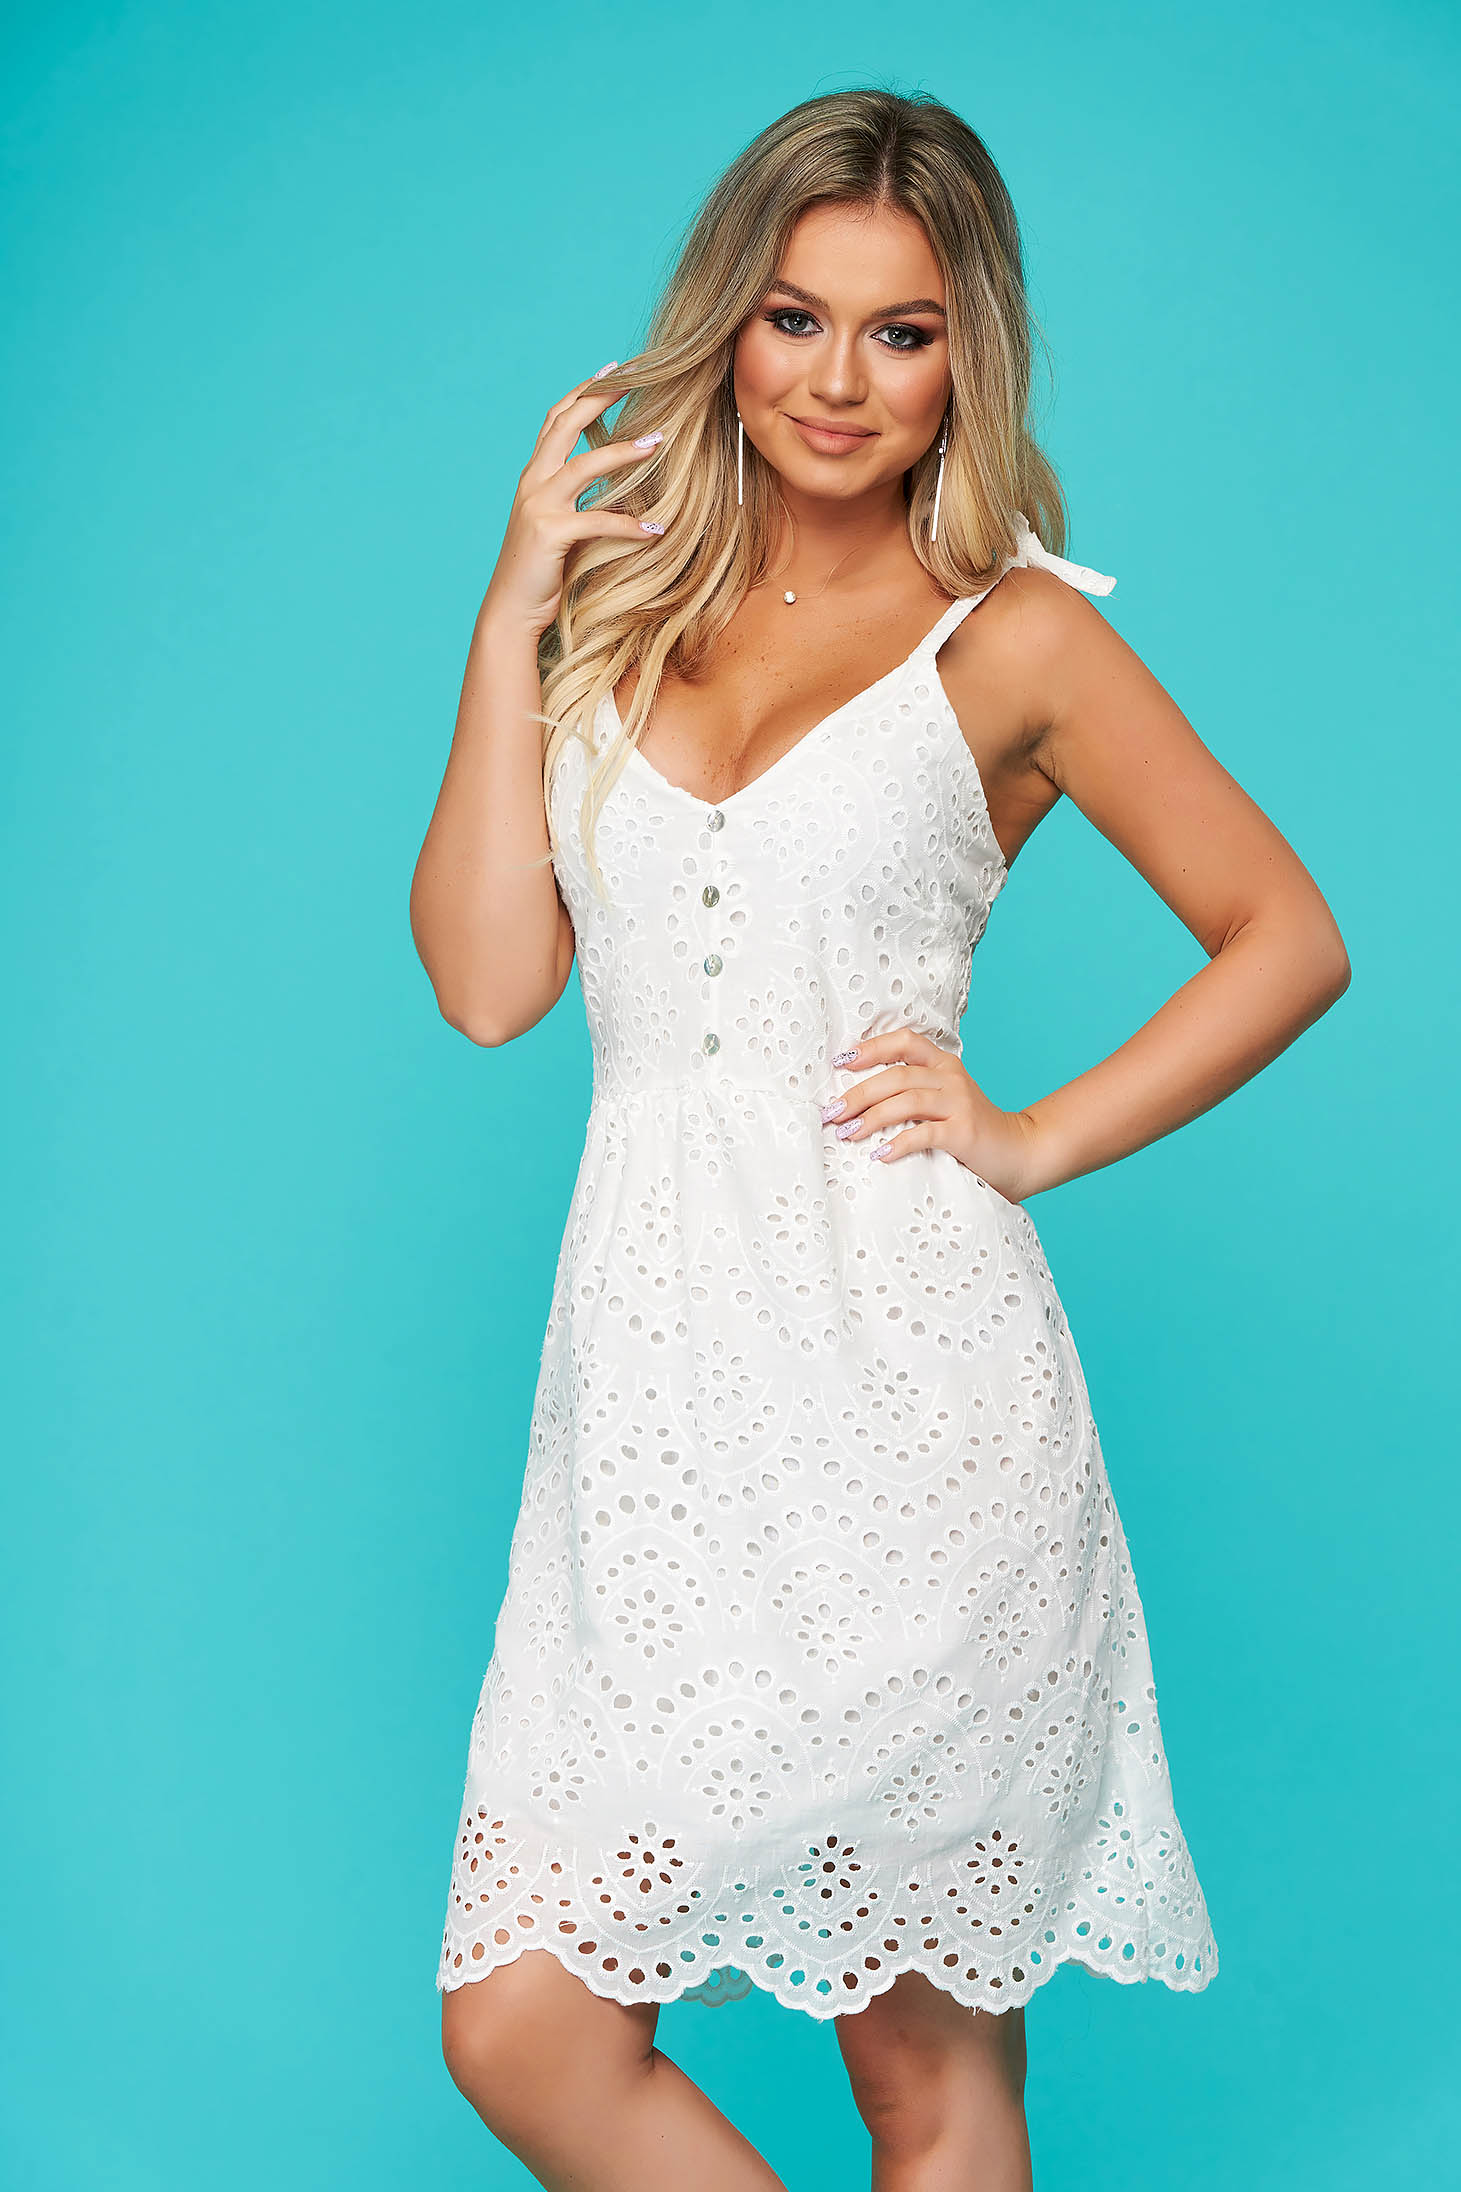 White dress short cut daily guipure straight with braces